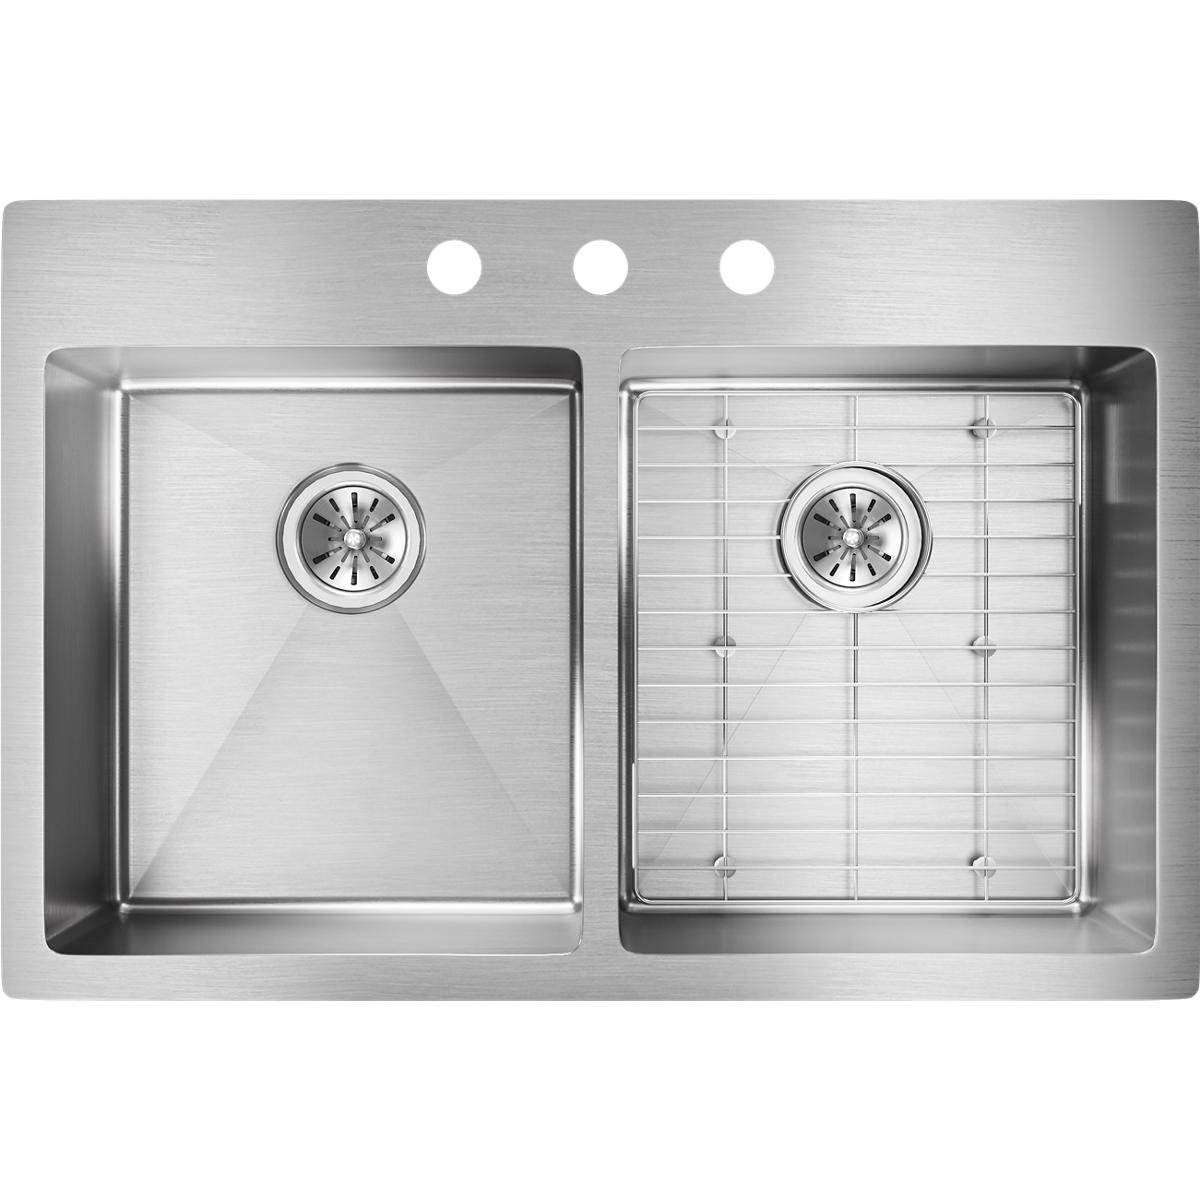 Elkay ECTSR33229TBG3 Crosstown Equal Double Bowl Dual Mount Stainless Steel Sink Kit